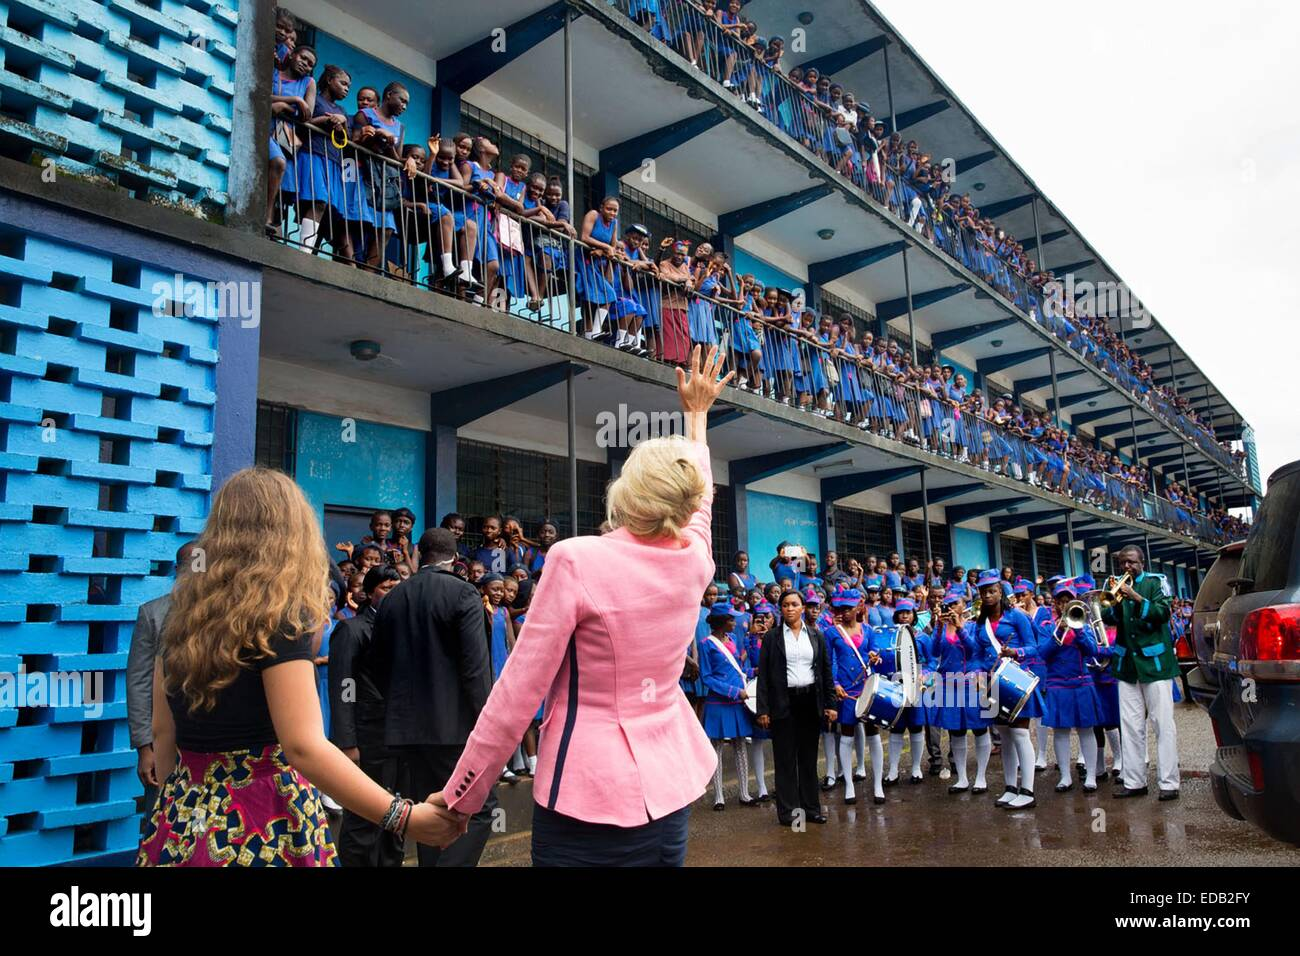 Dr. Jill Biden, wife of the Vice President, and granddaughter Finnegan Biden wave to students assembled on the railings - Stock Image